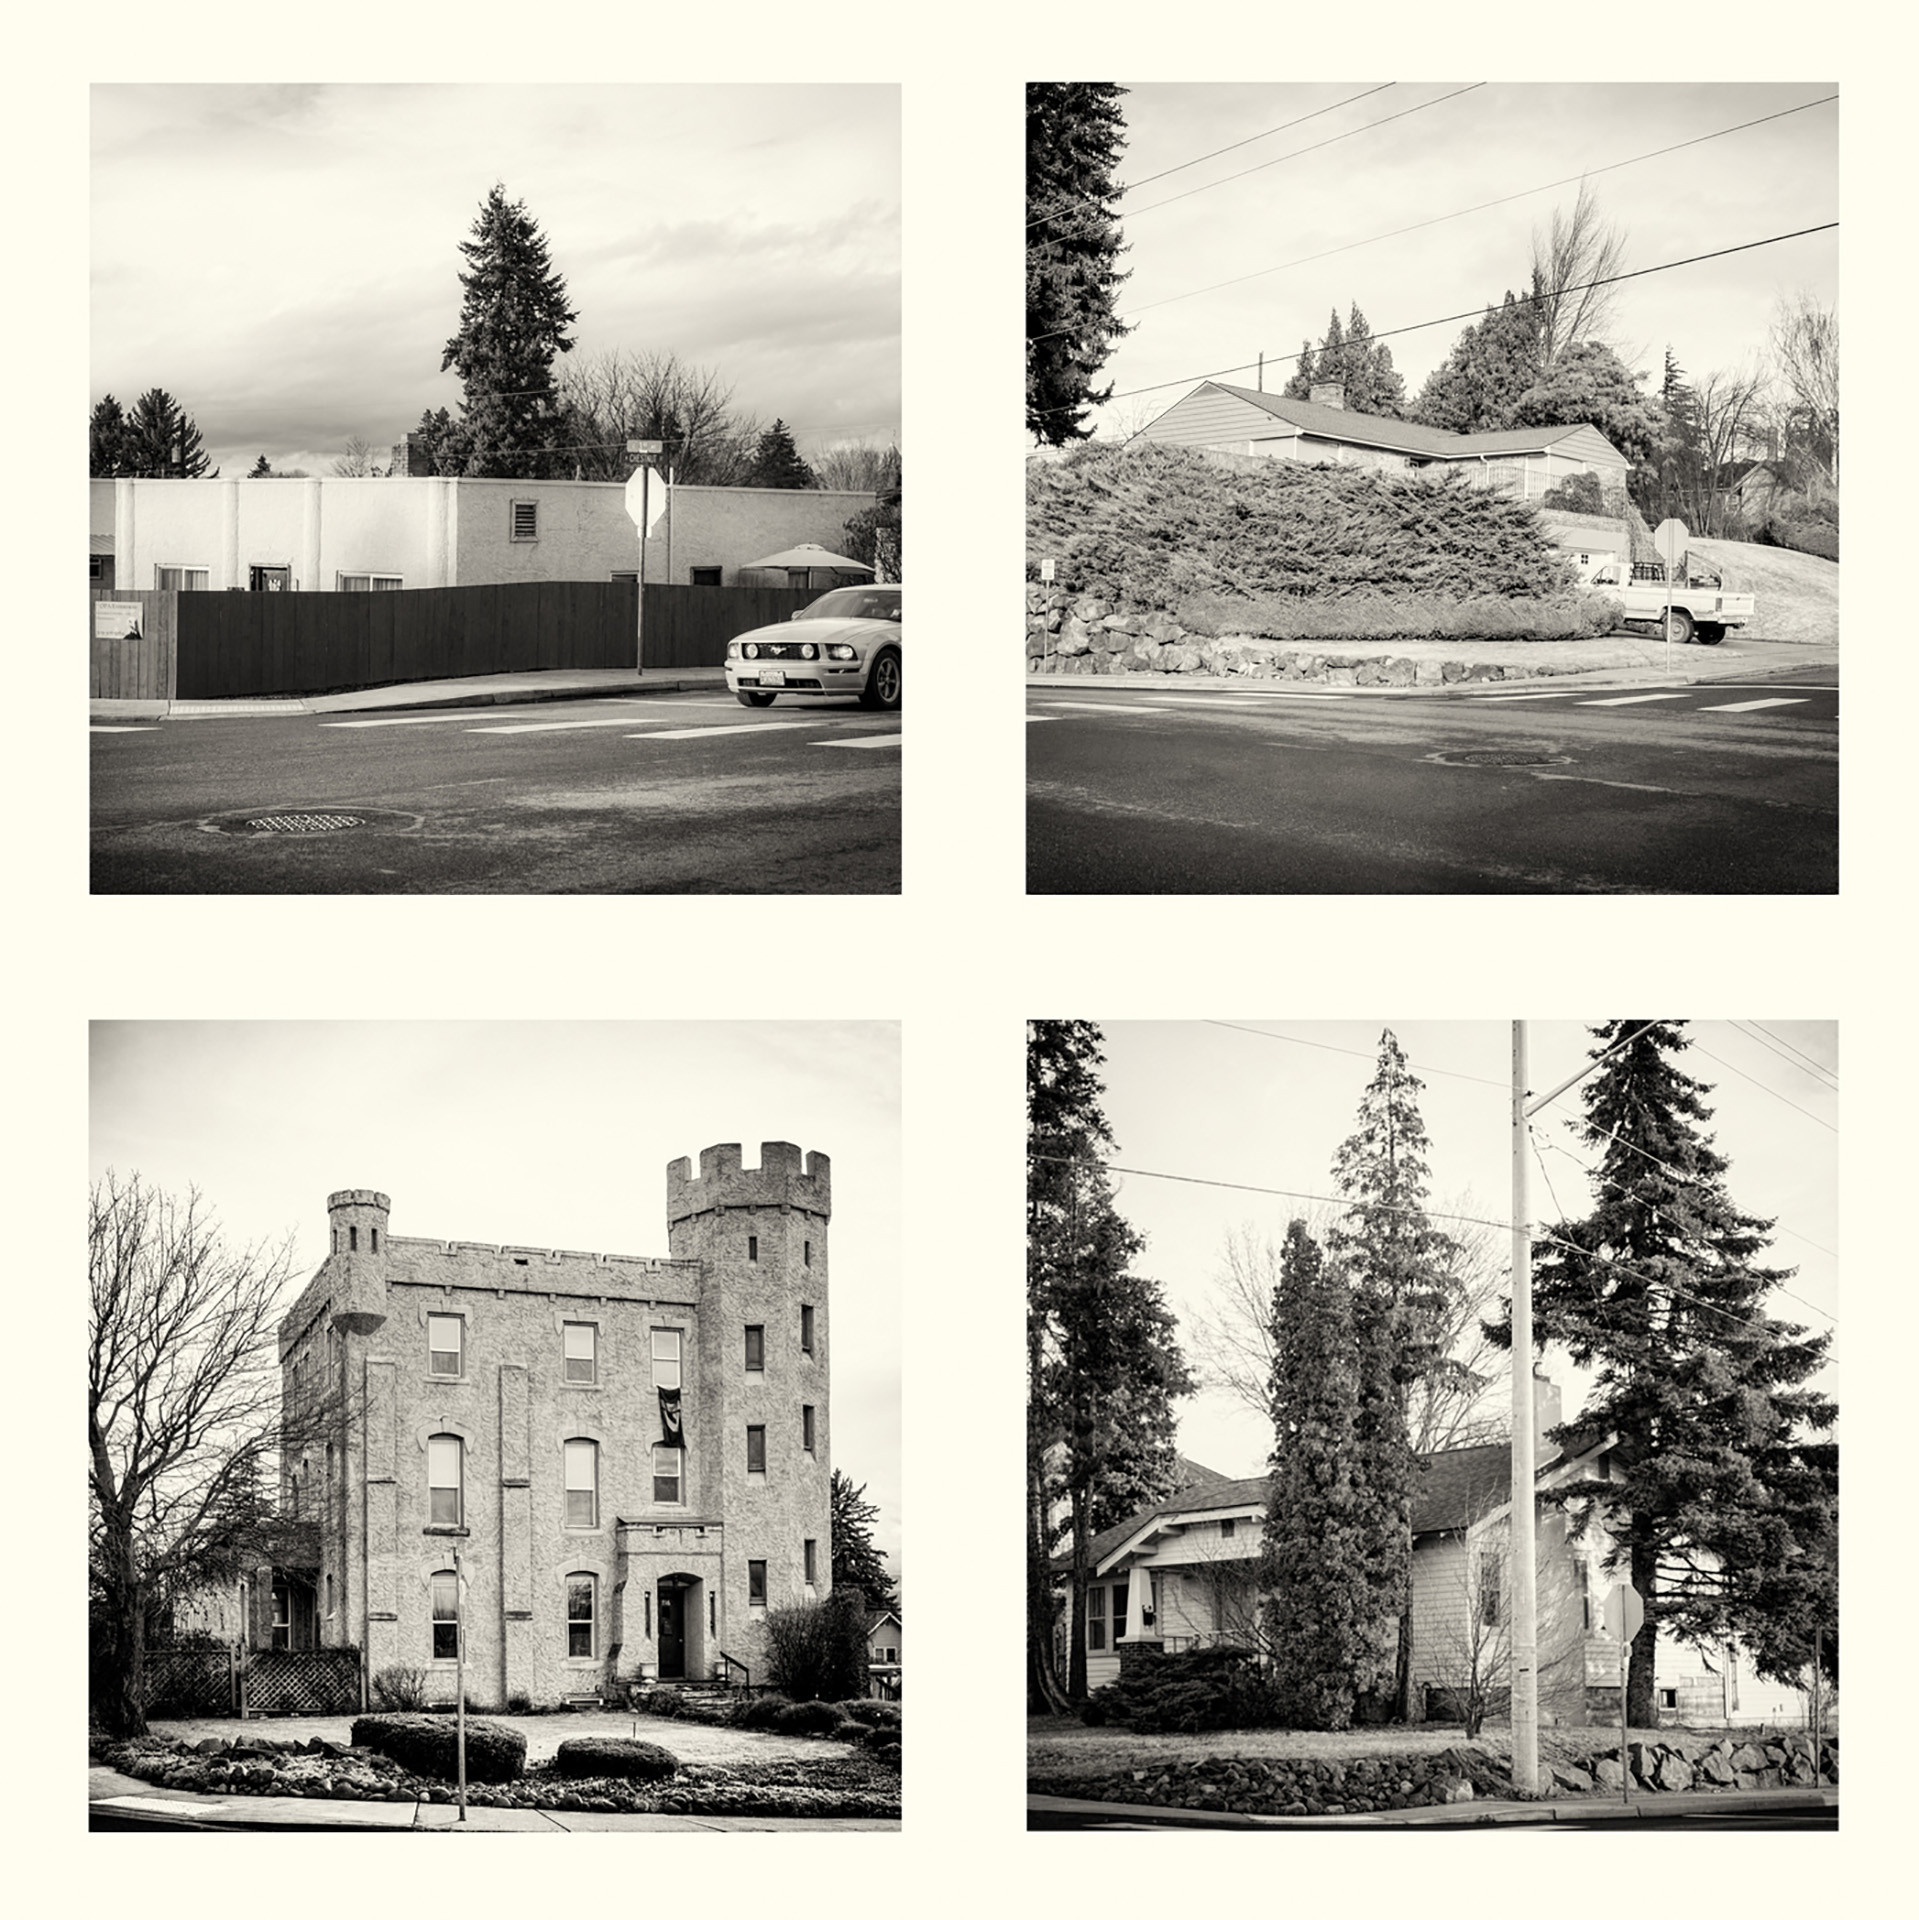 Skip Smith, The Four Corners of Chestnut and 3rd, Ellensburg, photograph